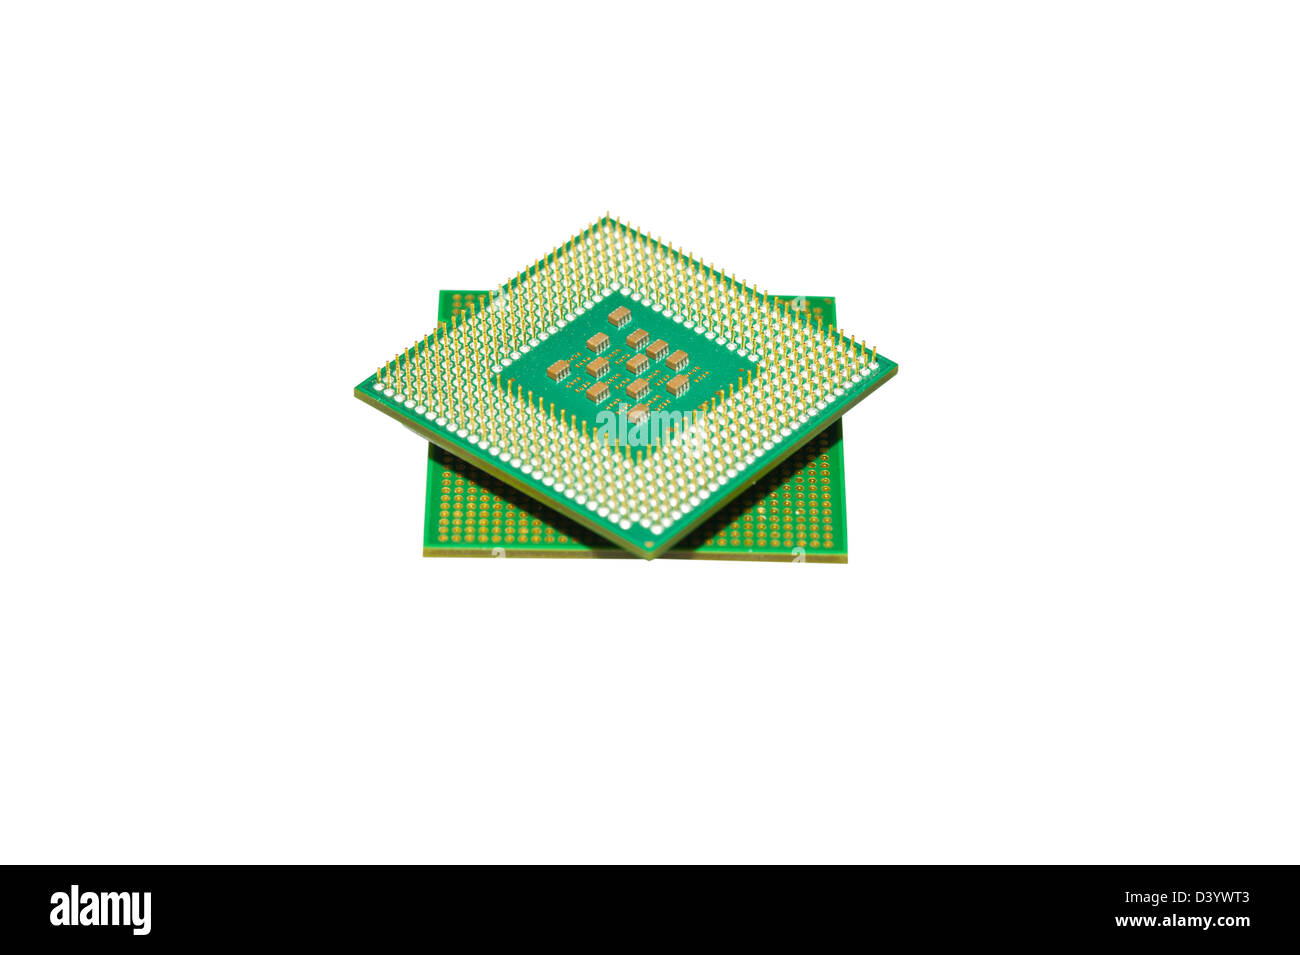 Different processors for the computer on a white background - Stock Image